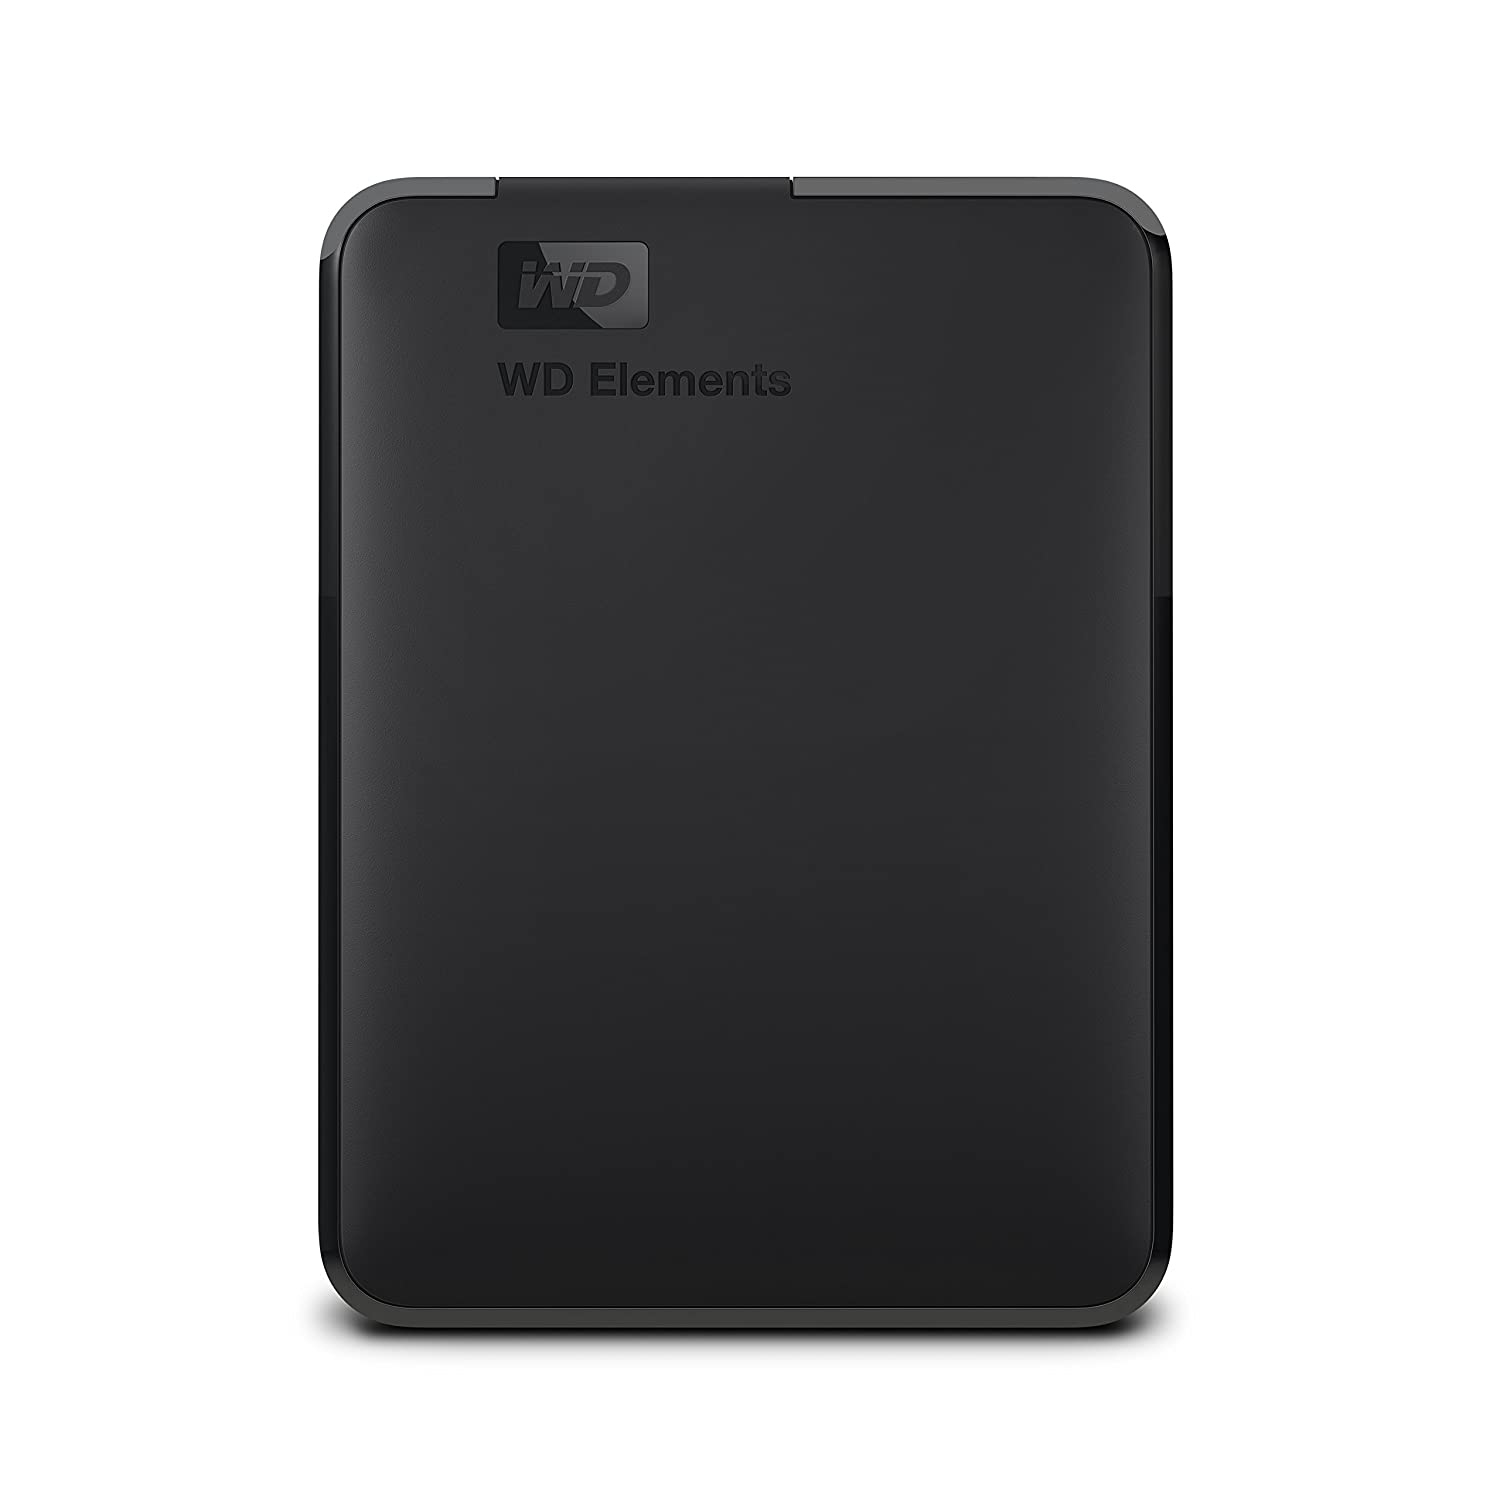 Western Digital 2TB Elements Portable External Hard Drive